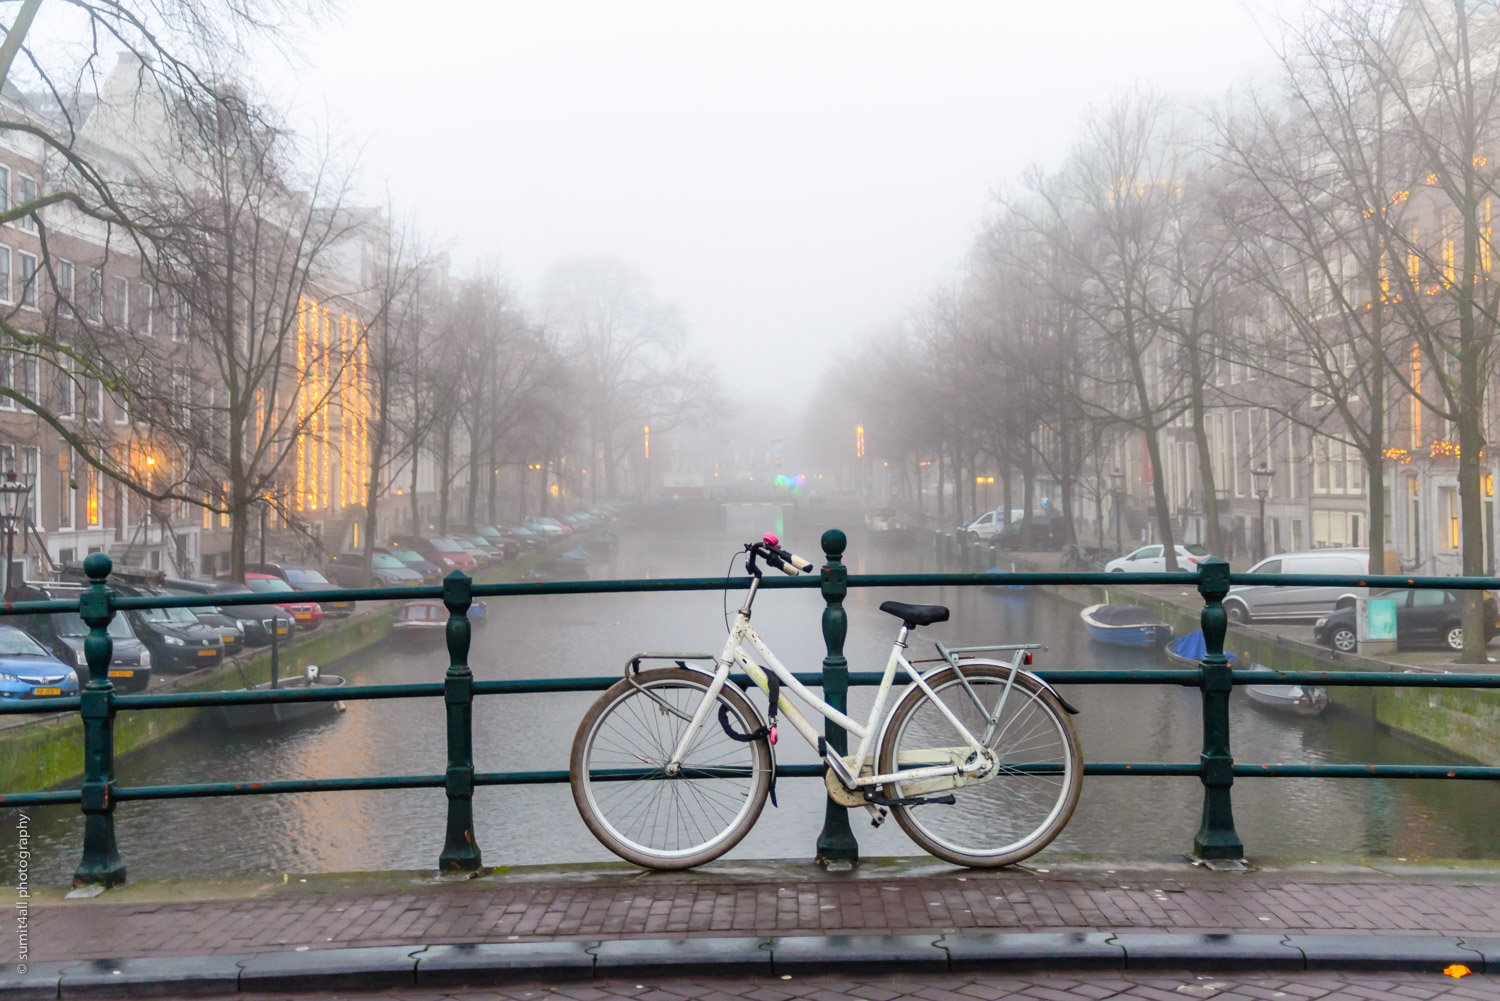 The Humble Bike in Amsterdam